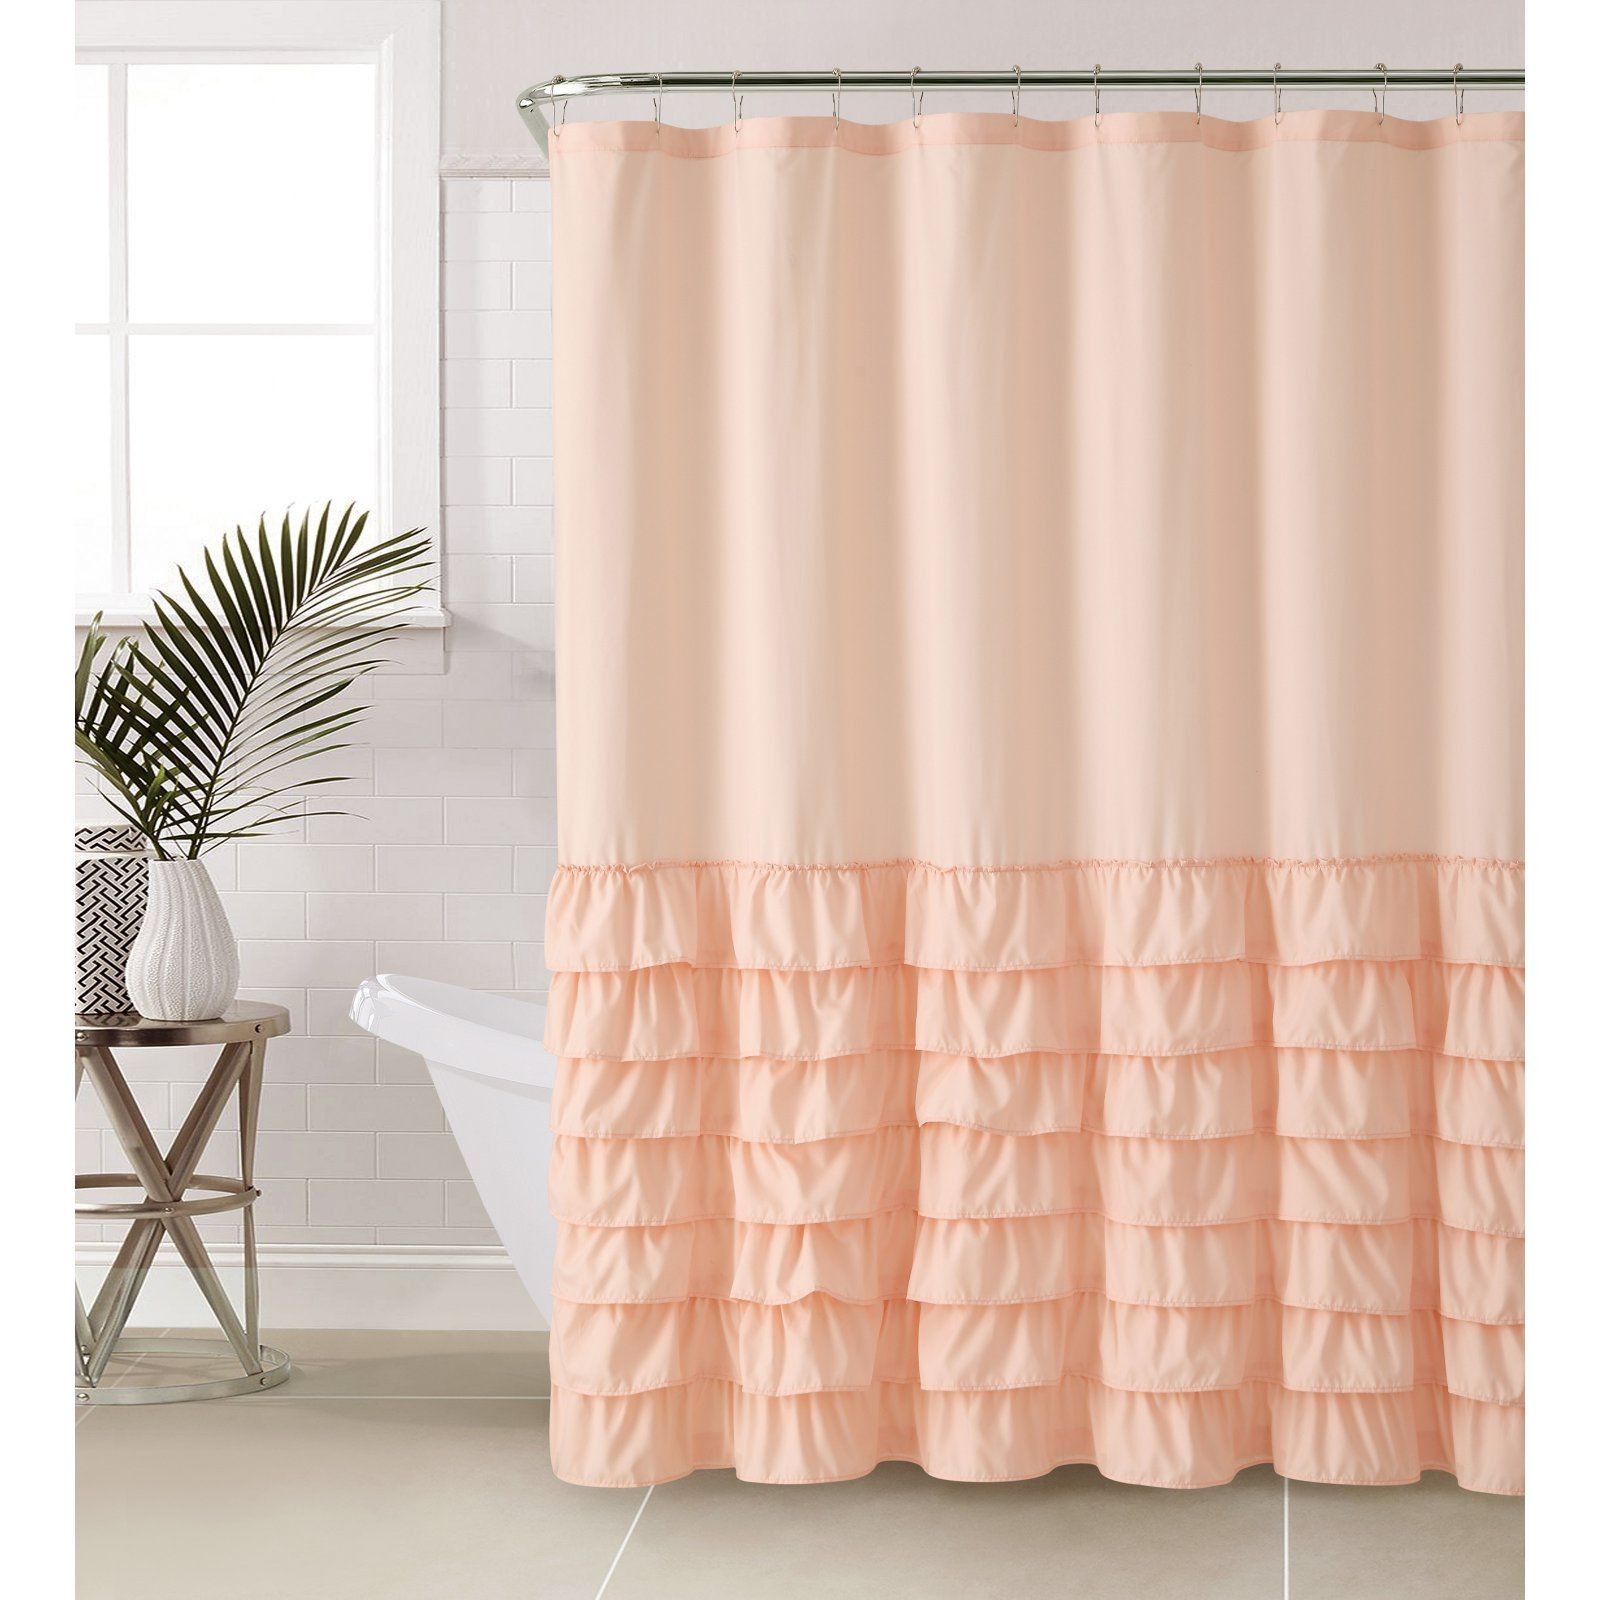 Vcny Melanie Shower Curtain Light Pink Ruffle Shower Curtains